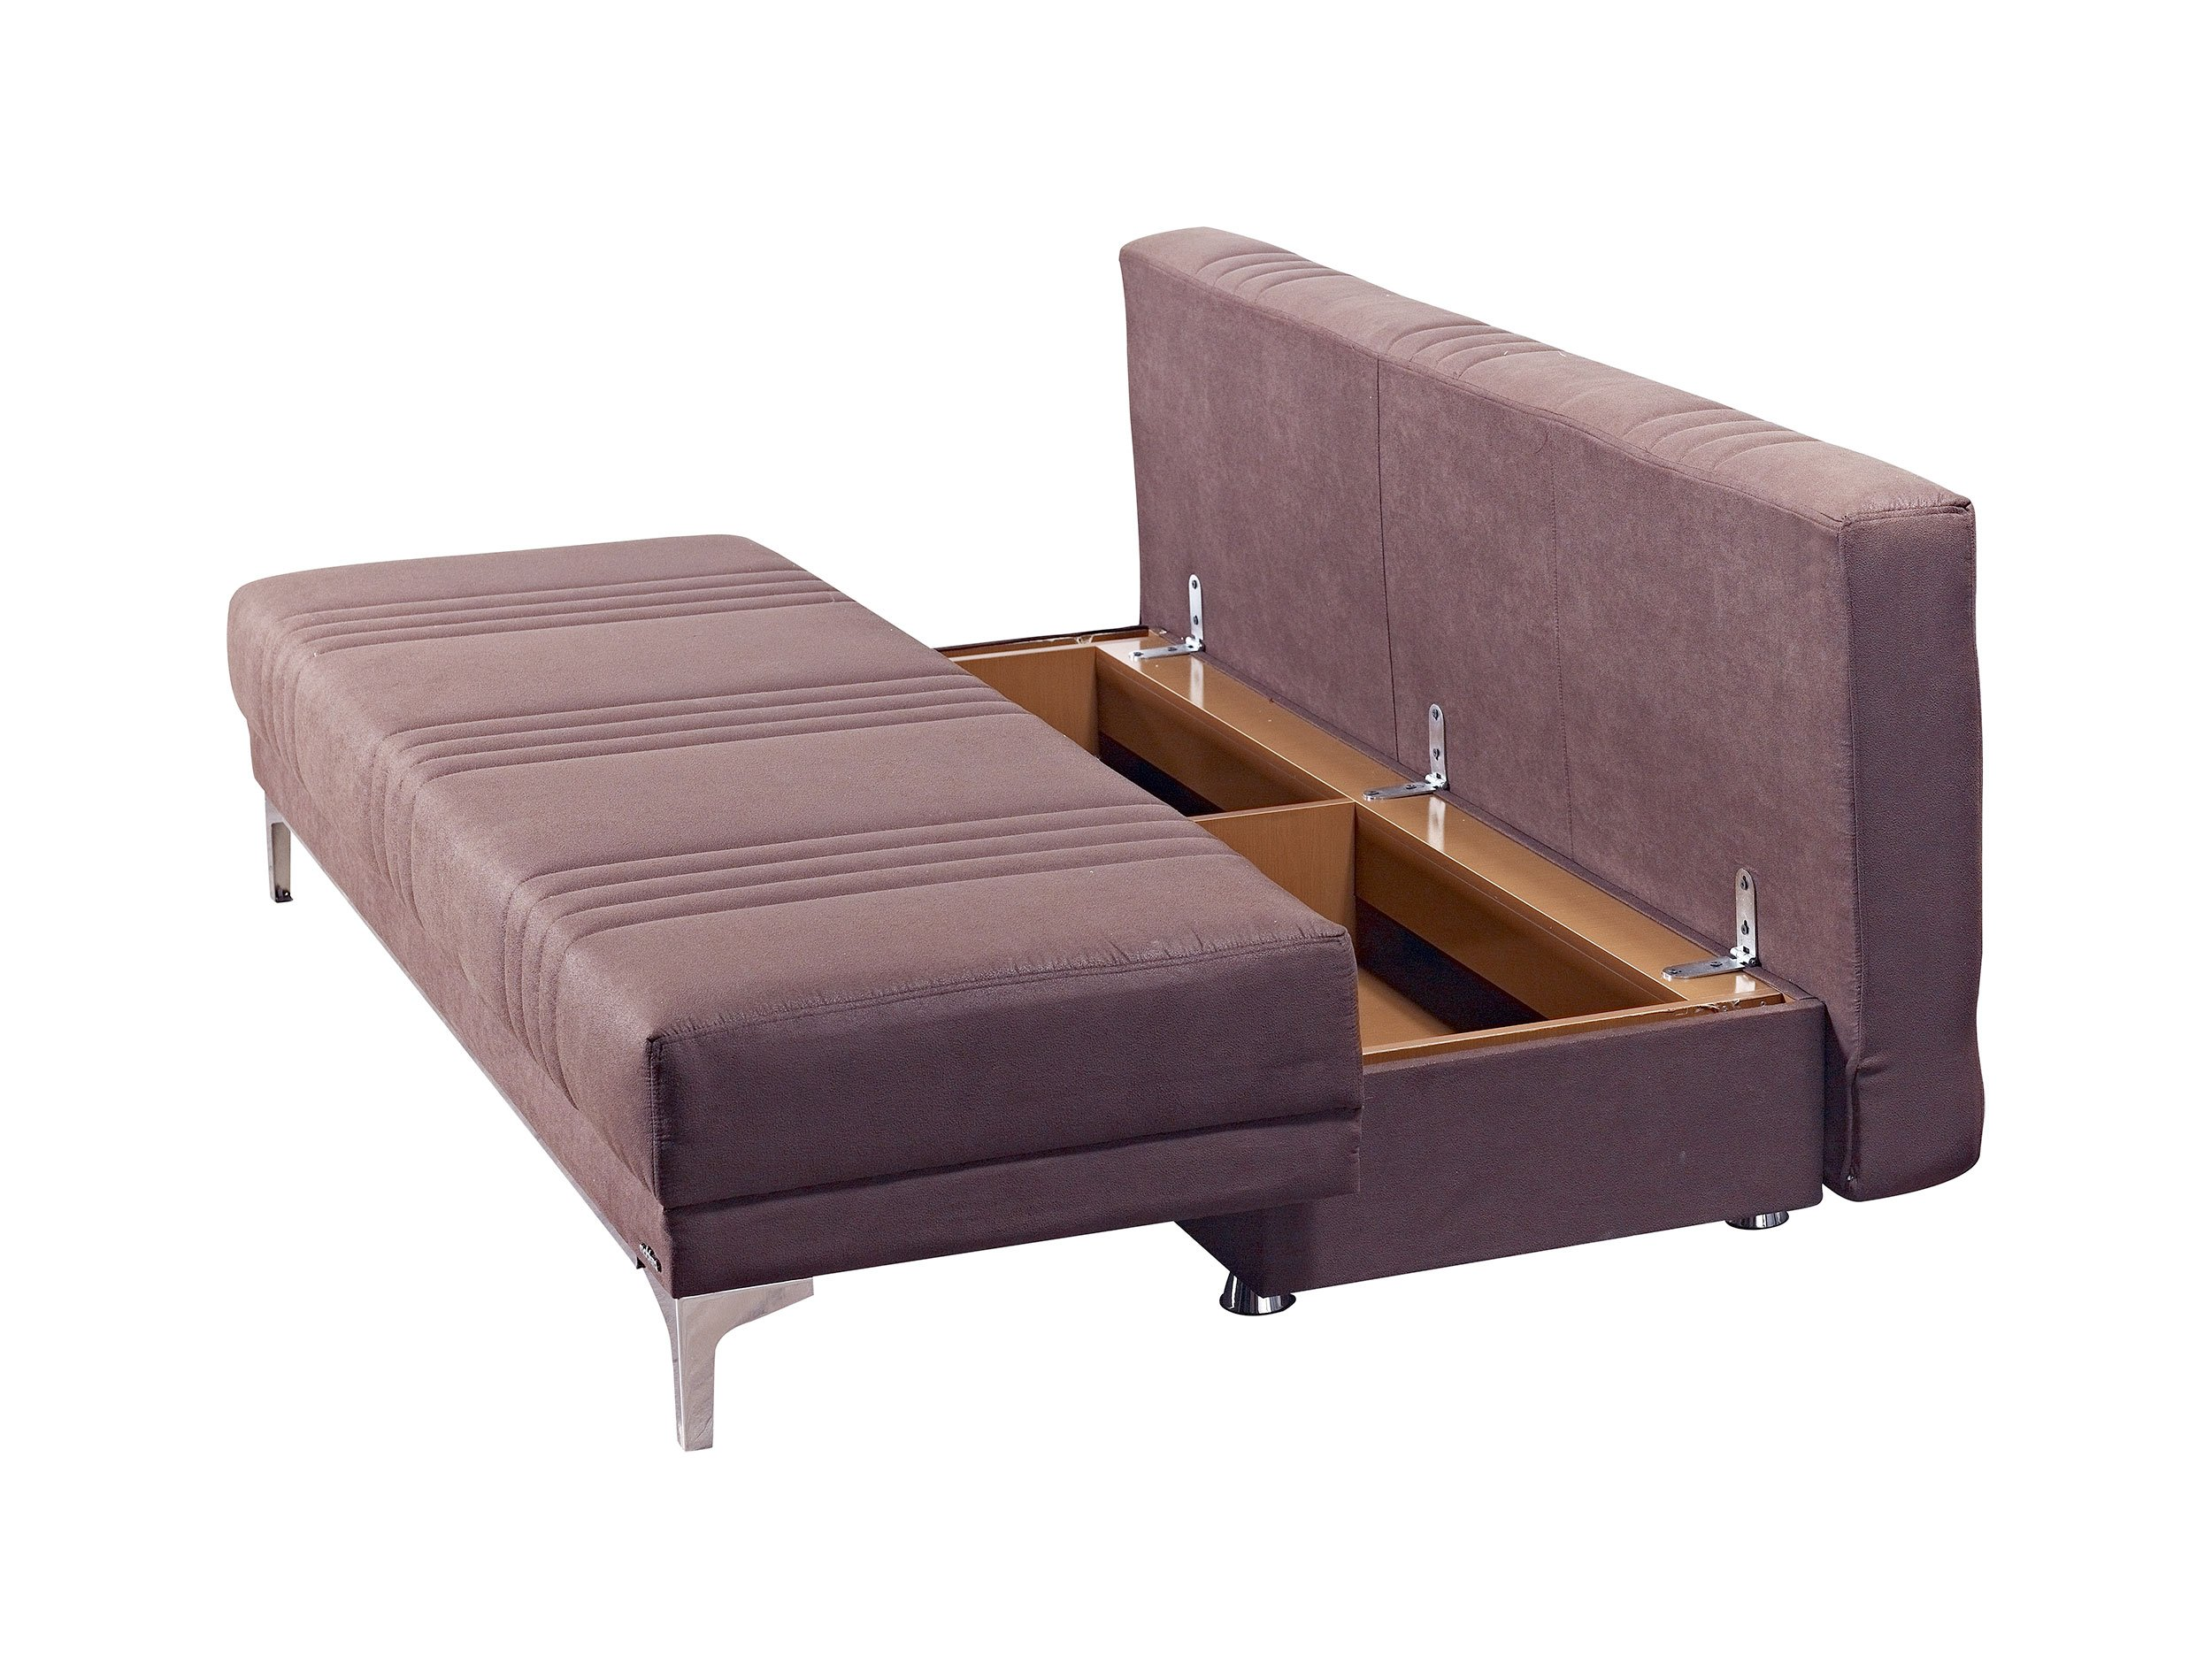 Queen size sofa beds sofa cool queen bed mattress thesofa for Size of a sofa